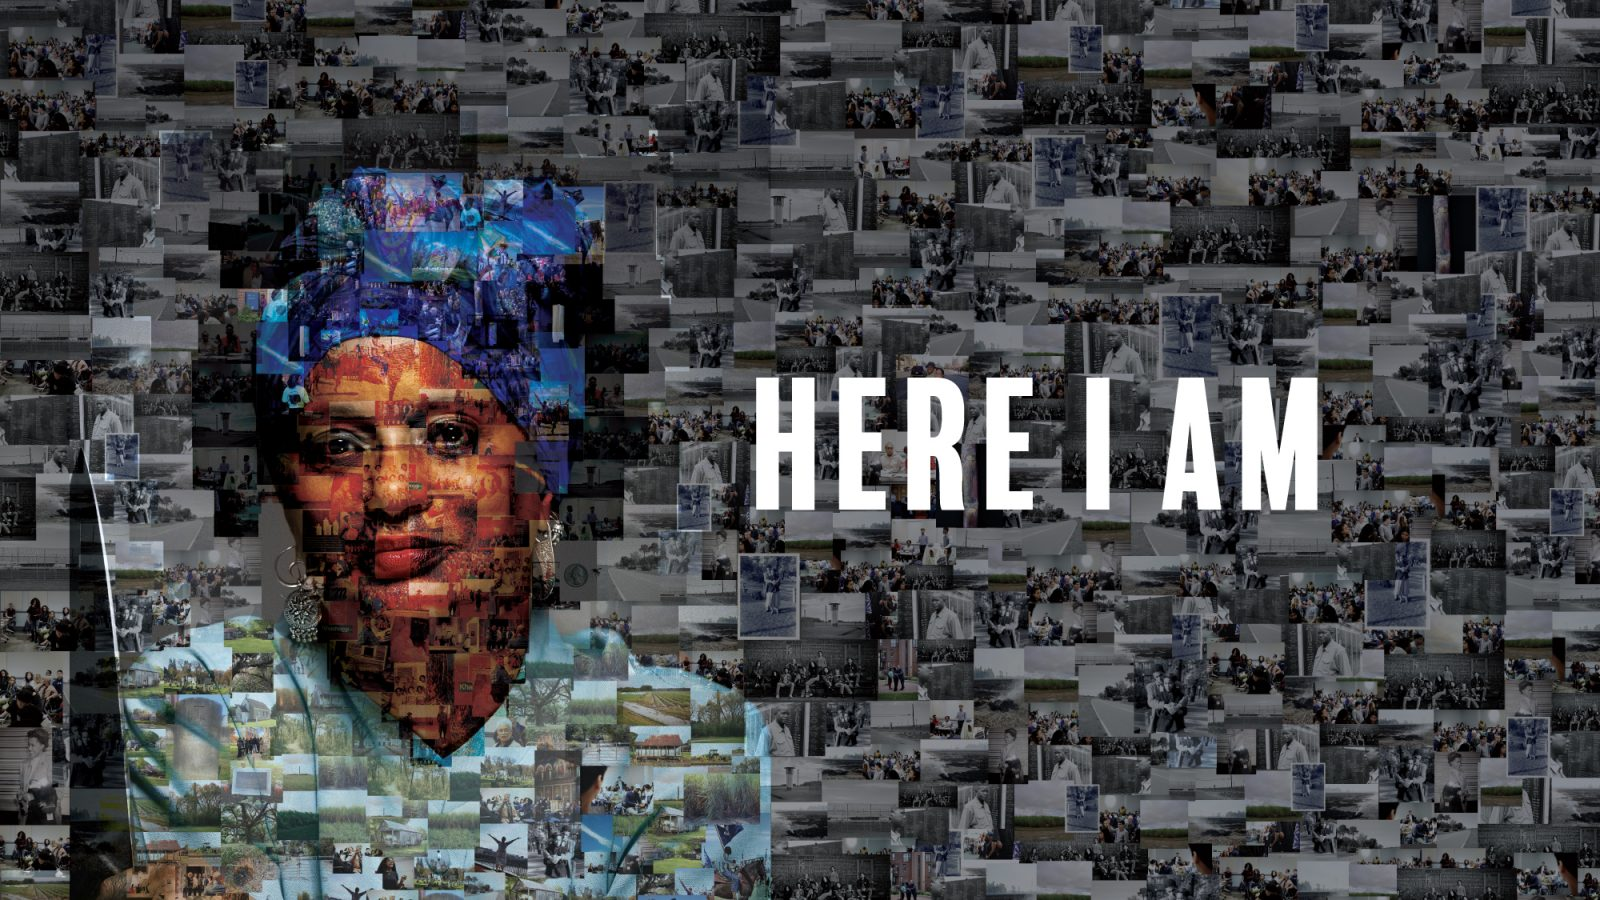 A large mosaic image of Mélisande Short-Colomb, comprised of personal and historical images from her show